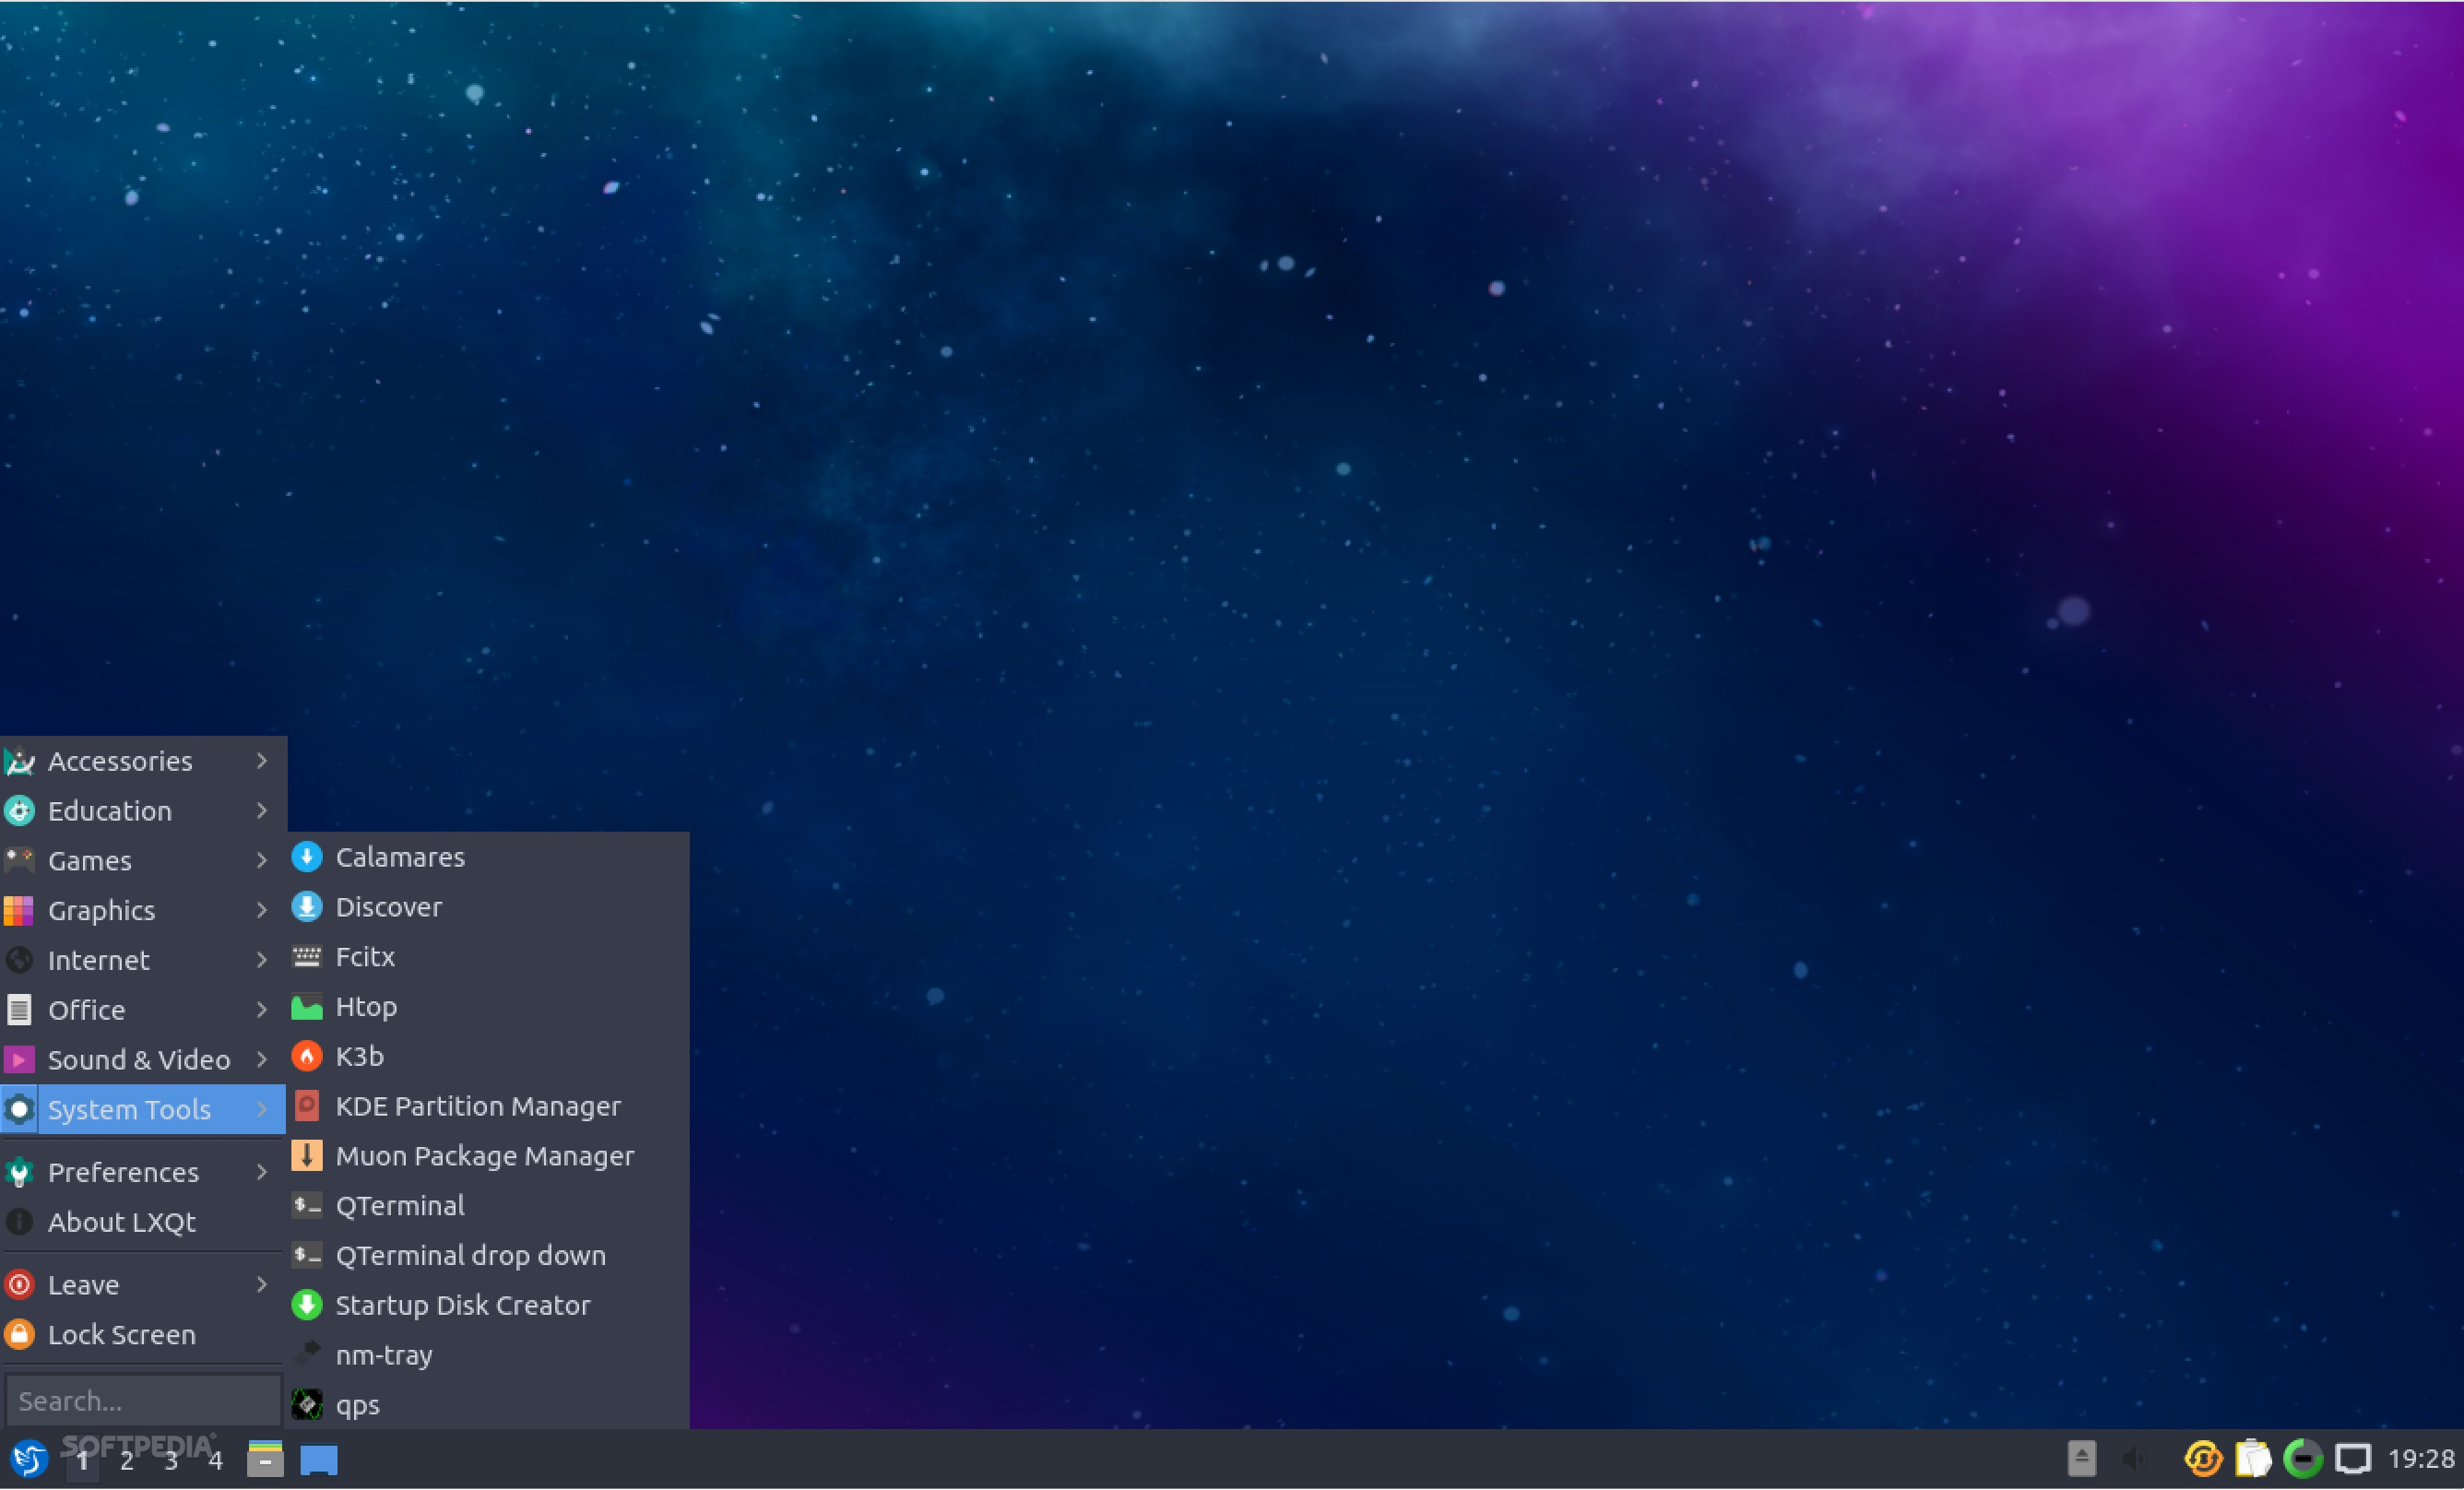 Hands-On with First Lubuntu 18 10 Build Featuring the LXQt